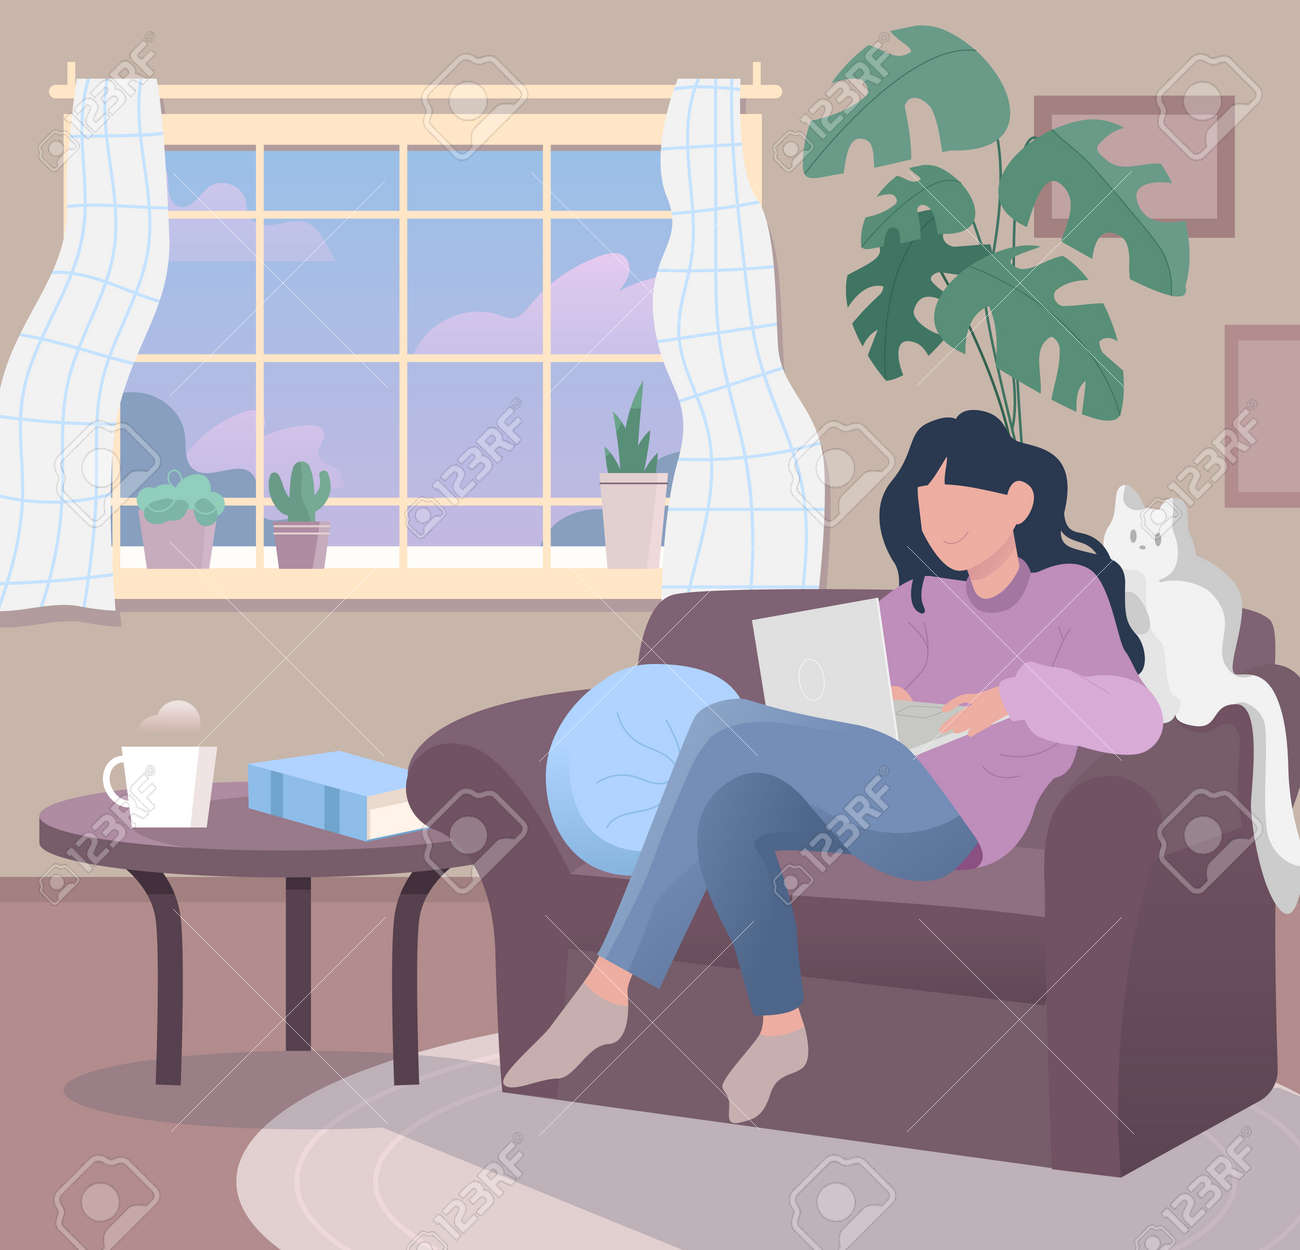 Freelancer work illustrations in flat vector and comfortable environment - 165454588